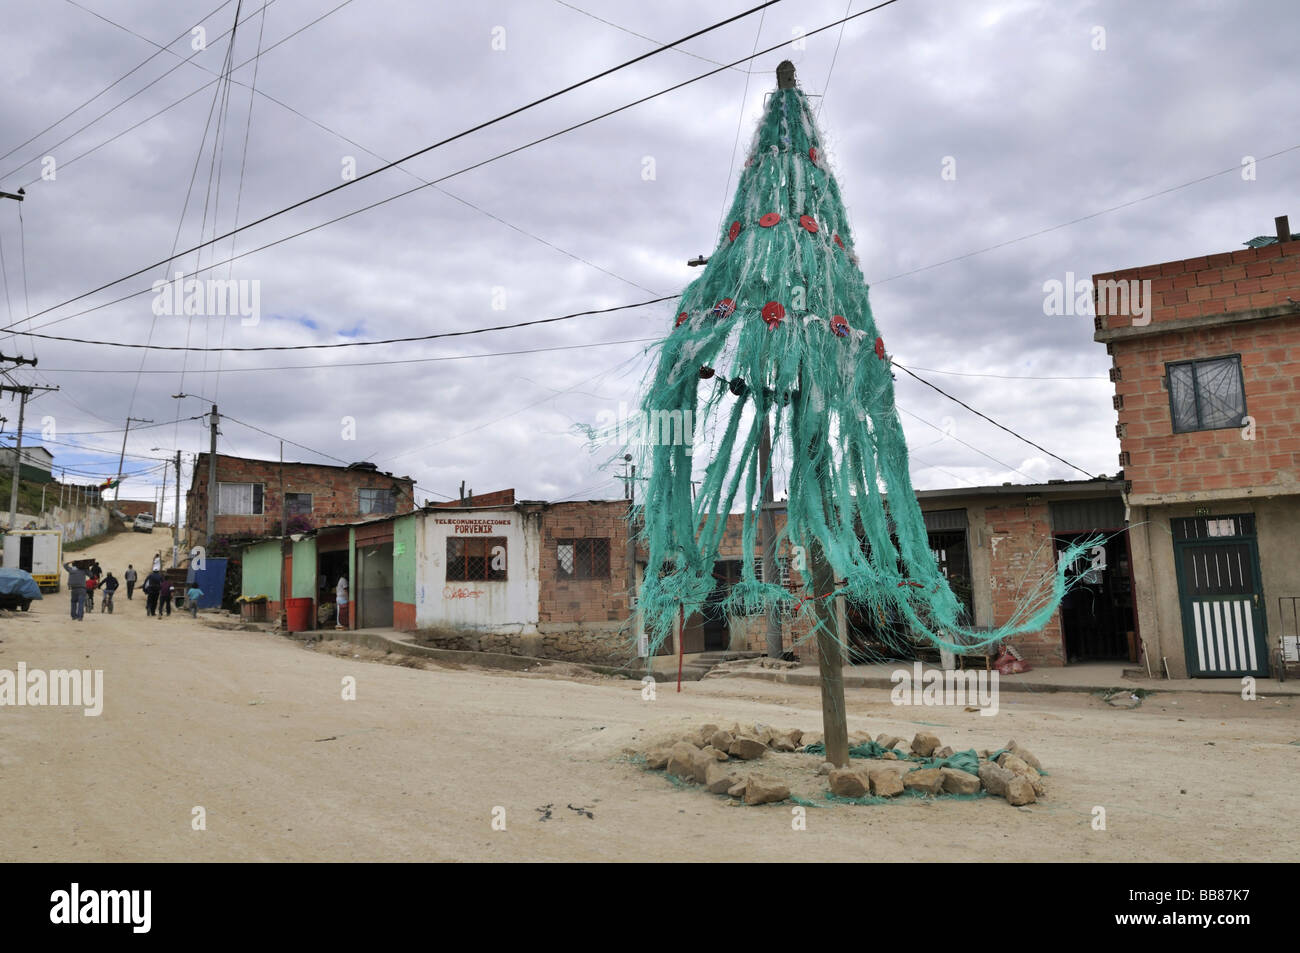 Huge aging Christmas tree blowing in the wind on a town square, slums of Alto de Cazuca, Soacha, Bogotá, Columbia - Stock Image